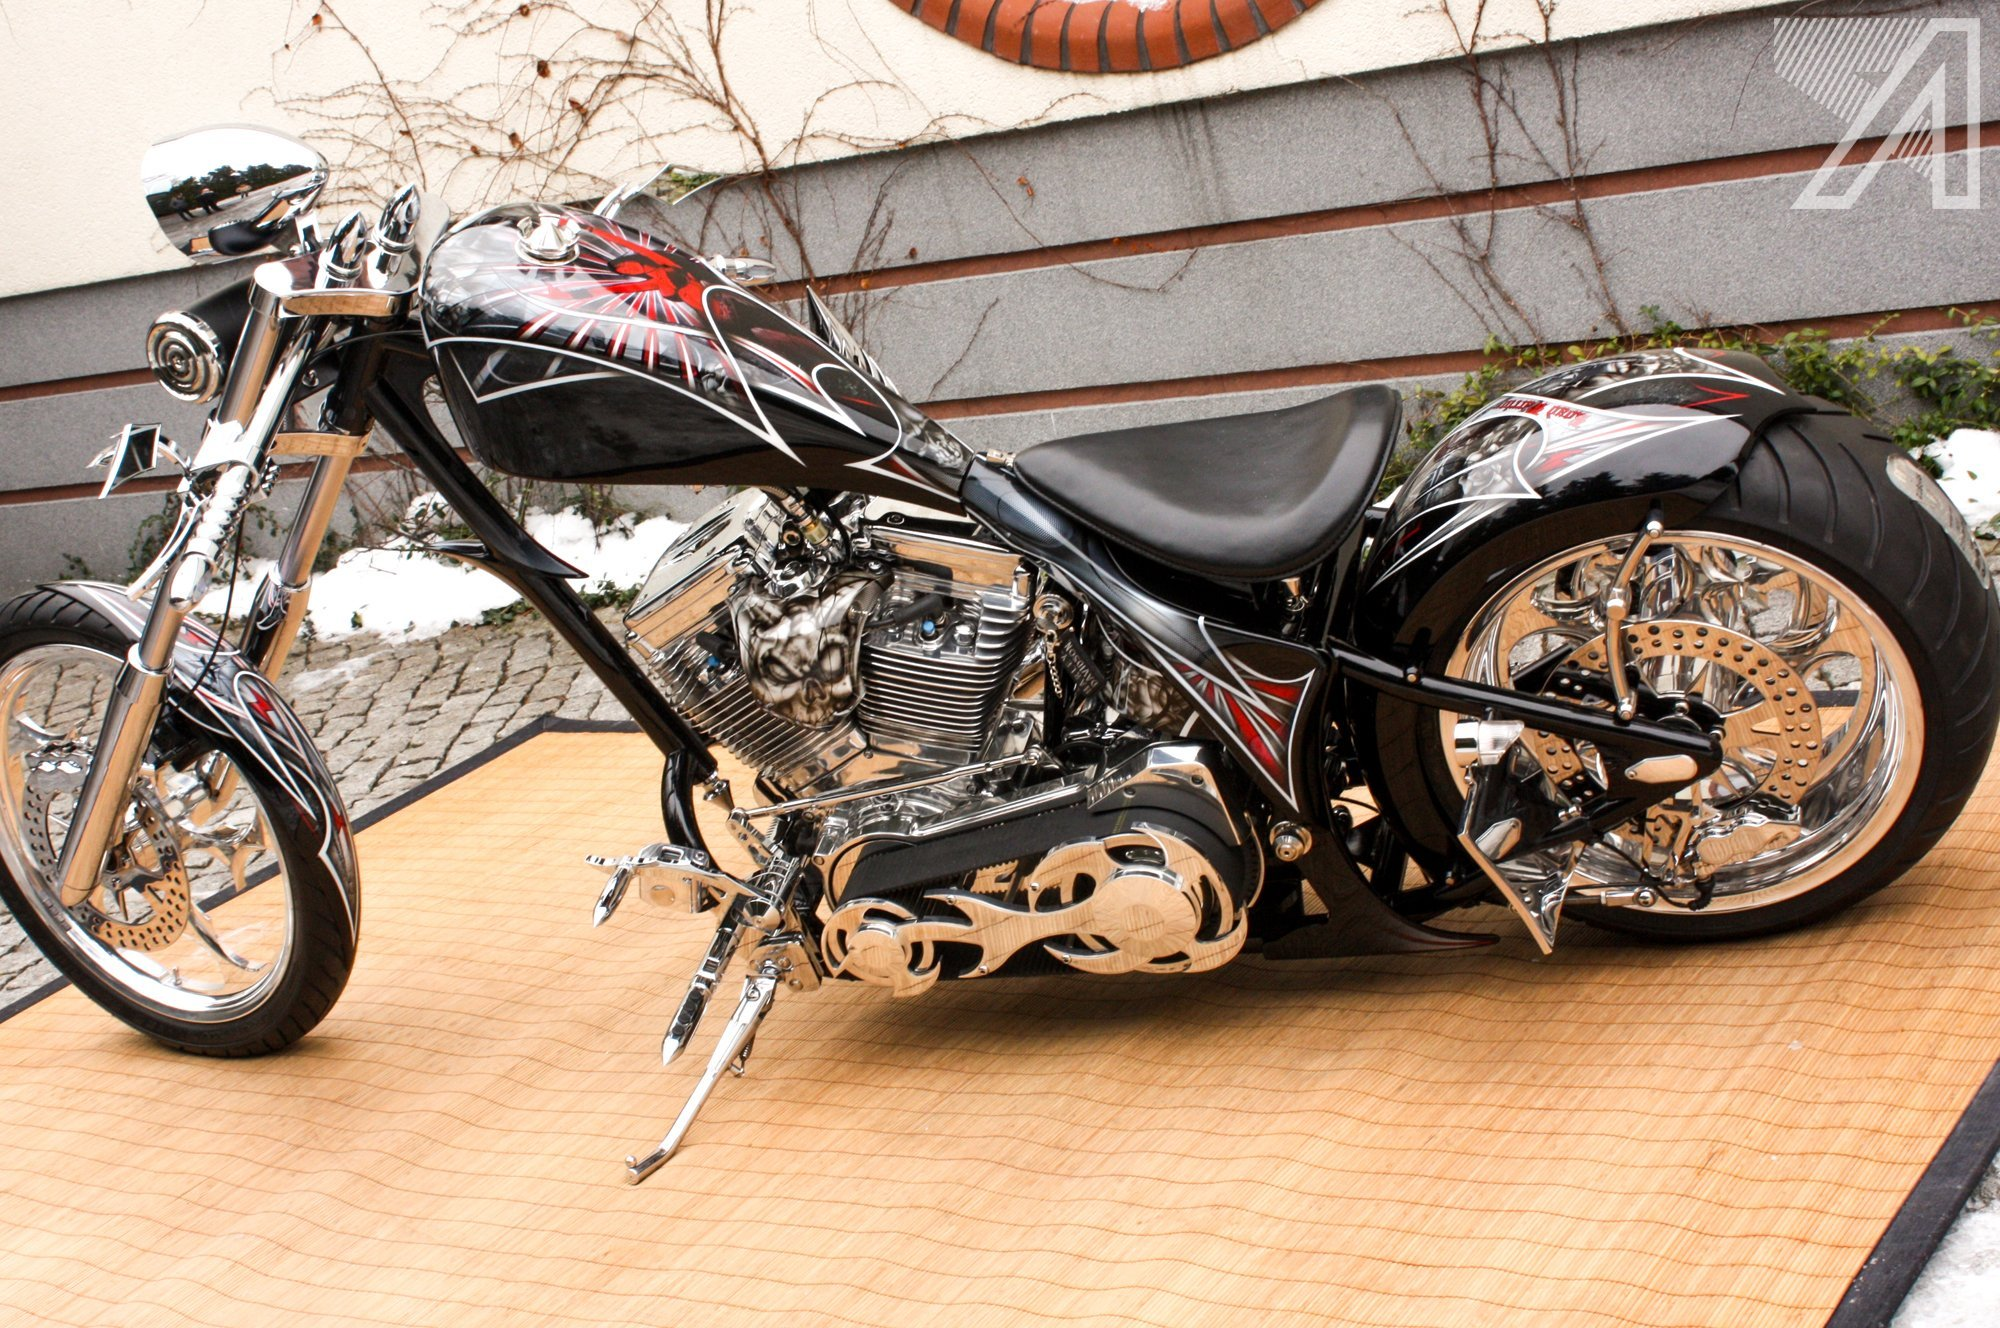 2016-10::1475490274-road-warrior-chopper-3.jpg